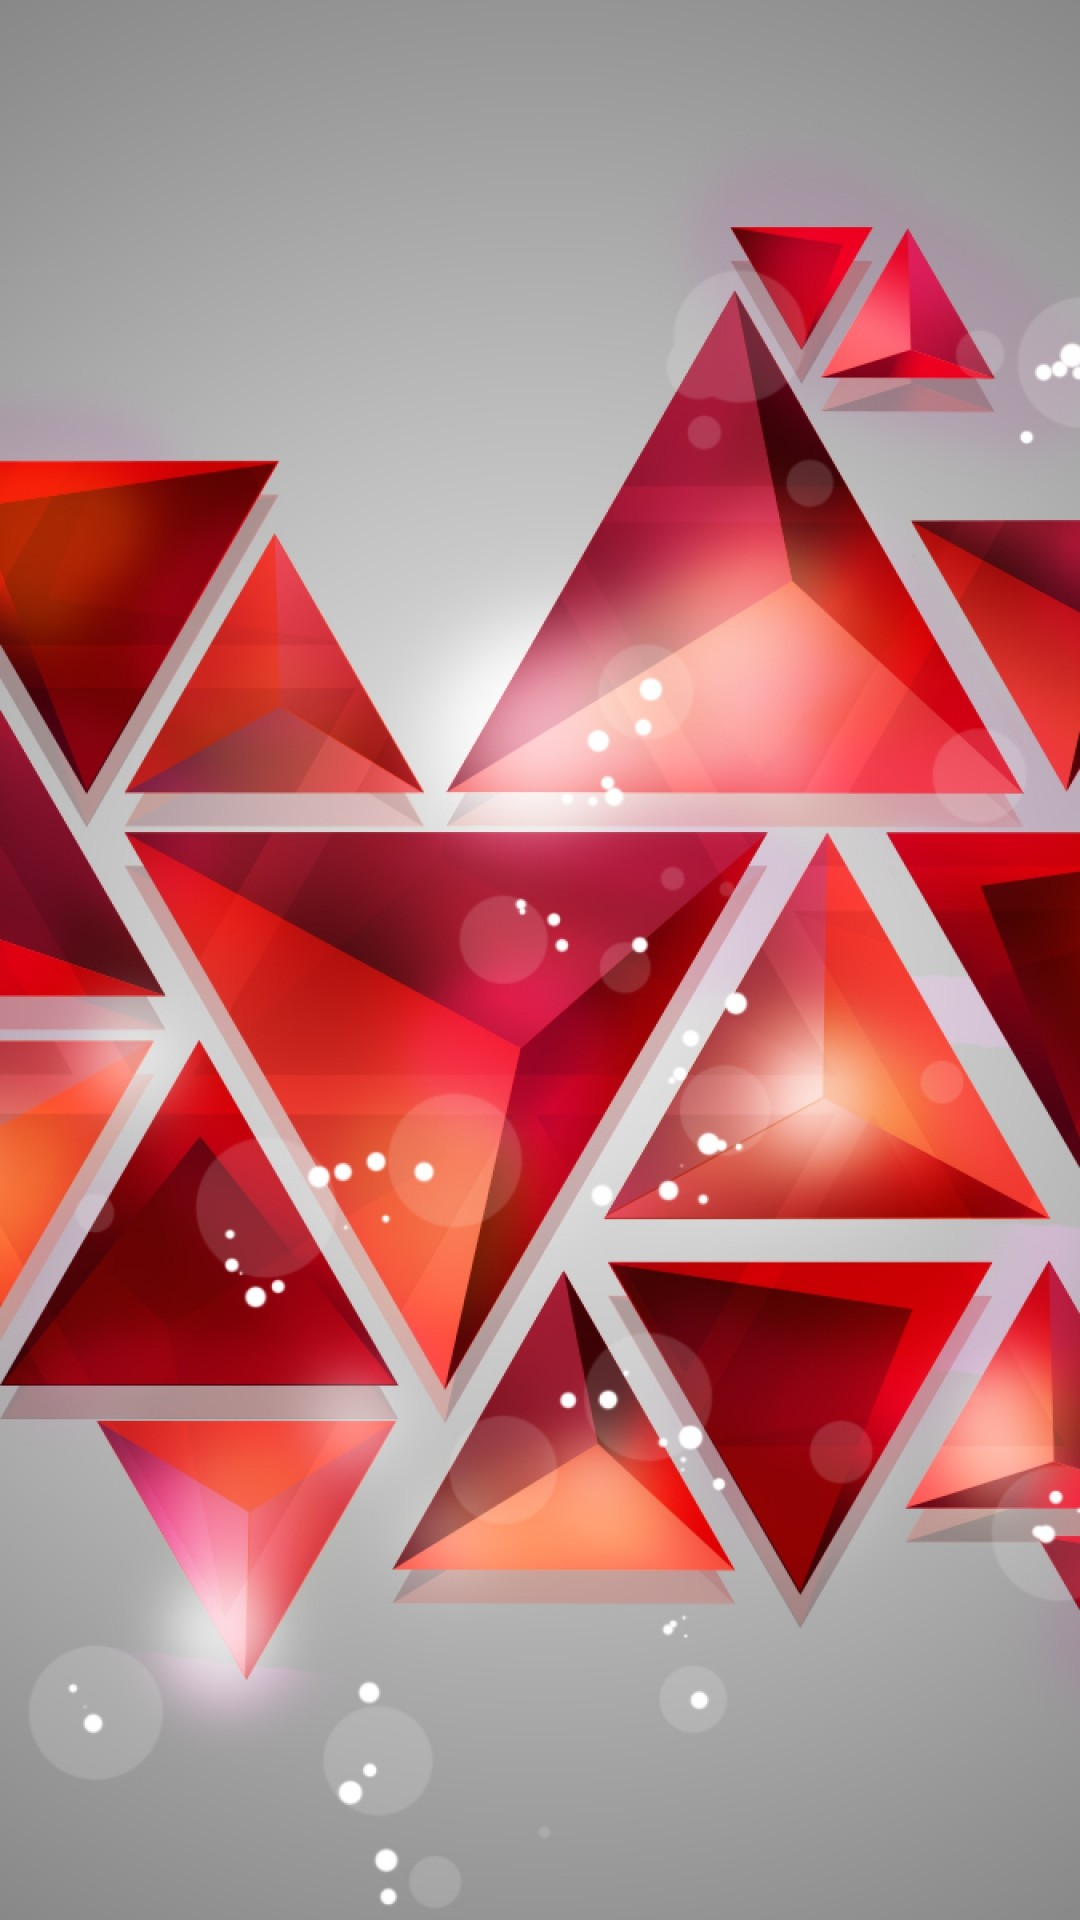 Geometric Shapes Wallpaper (68+ images)